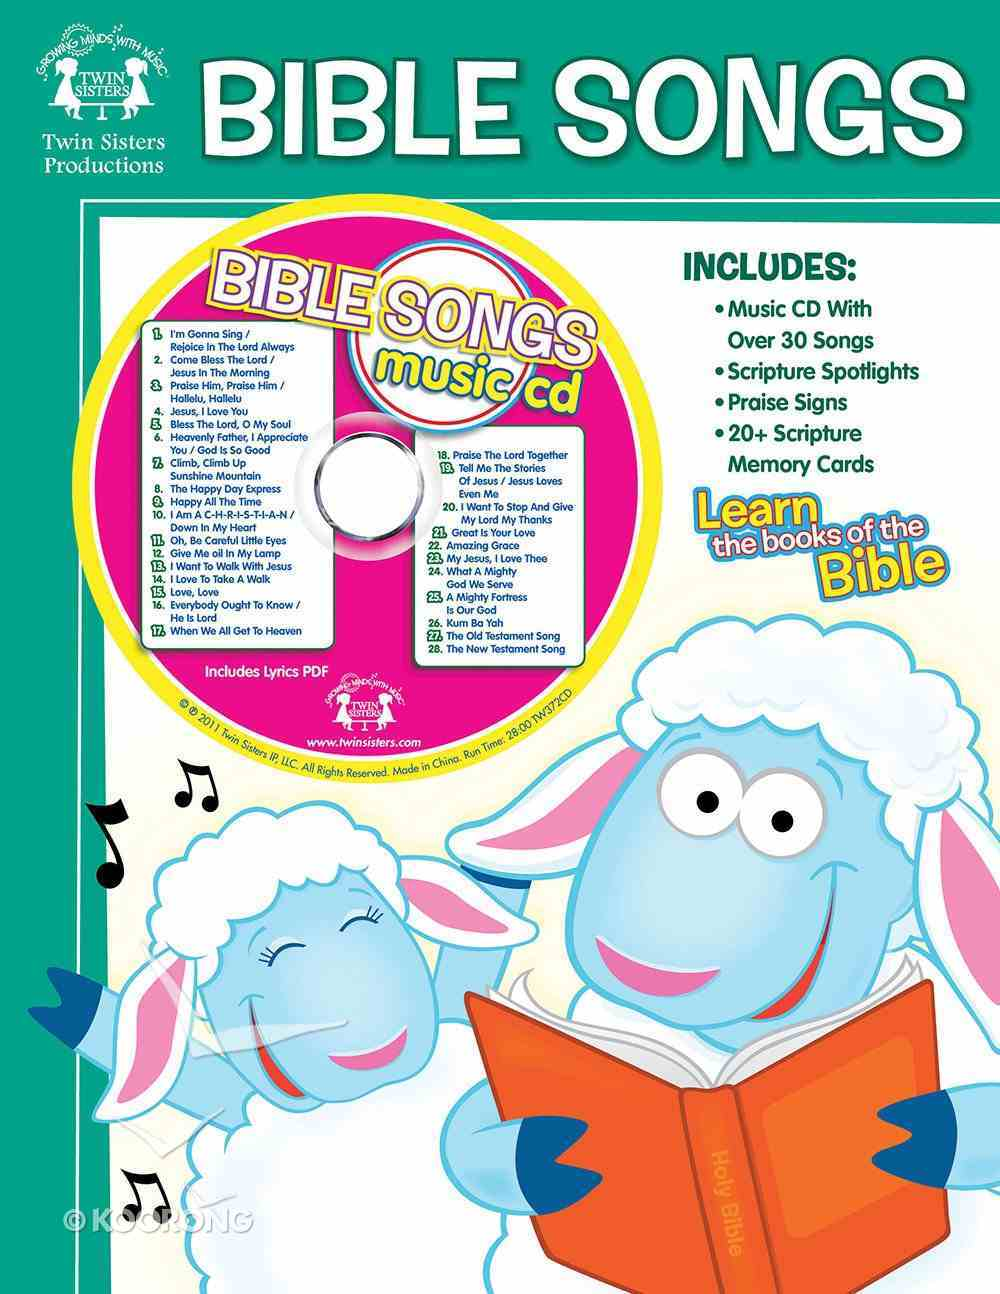 Bible Songs Workbook & CD: Learn the Books of the Bible Paperback